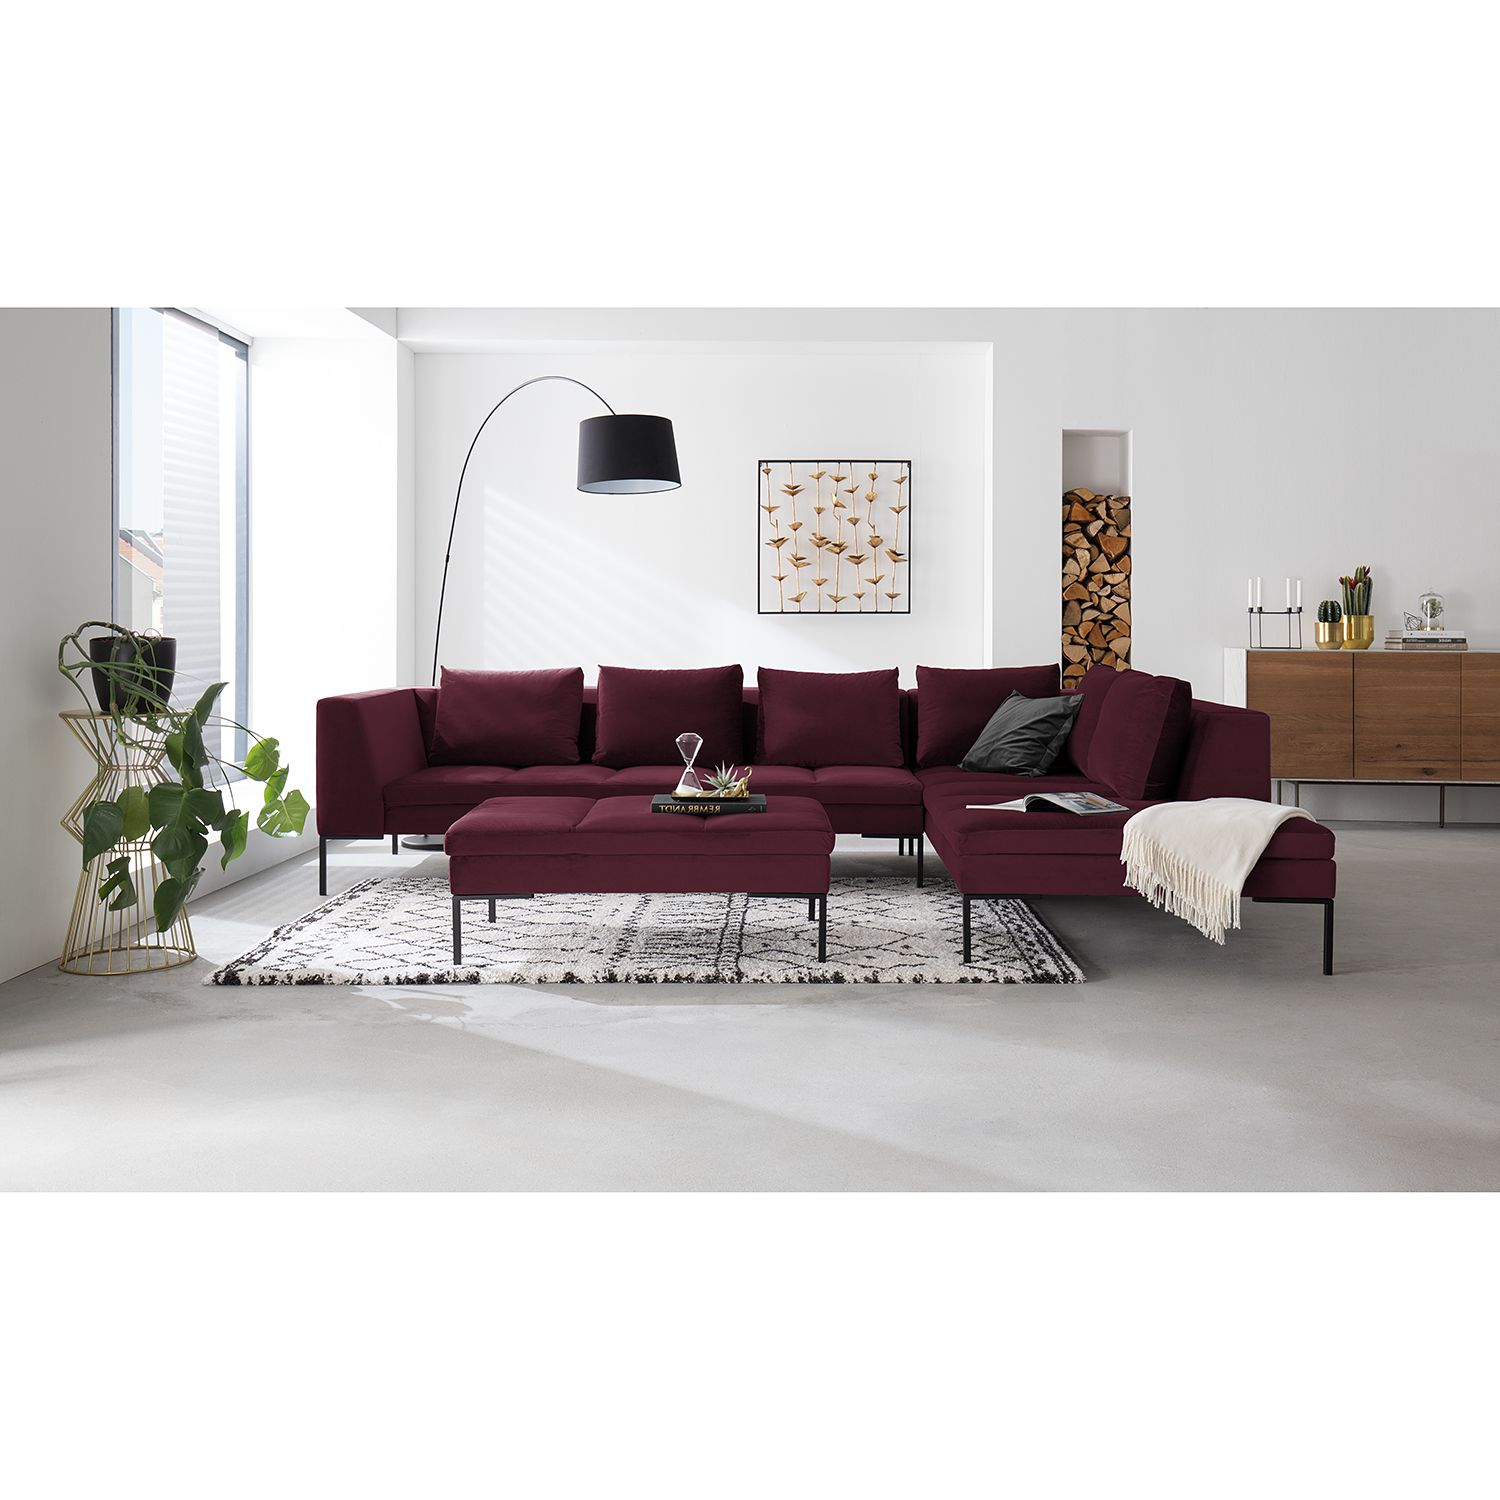 home24 Ecksofa Madison Samt